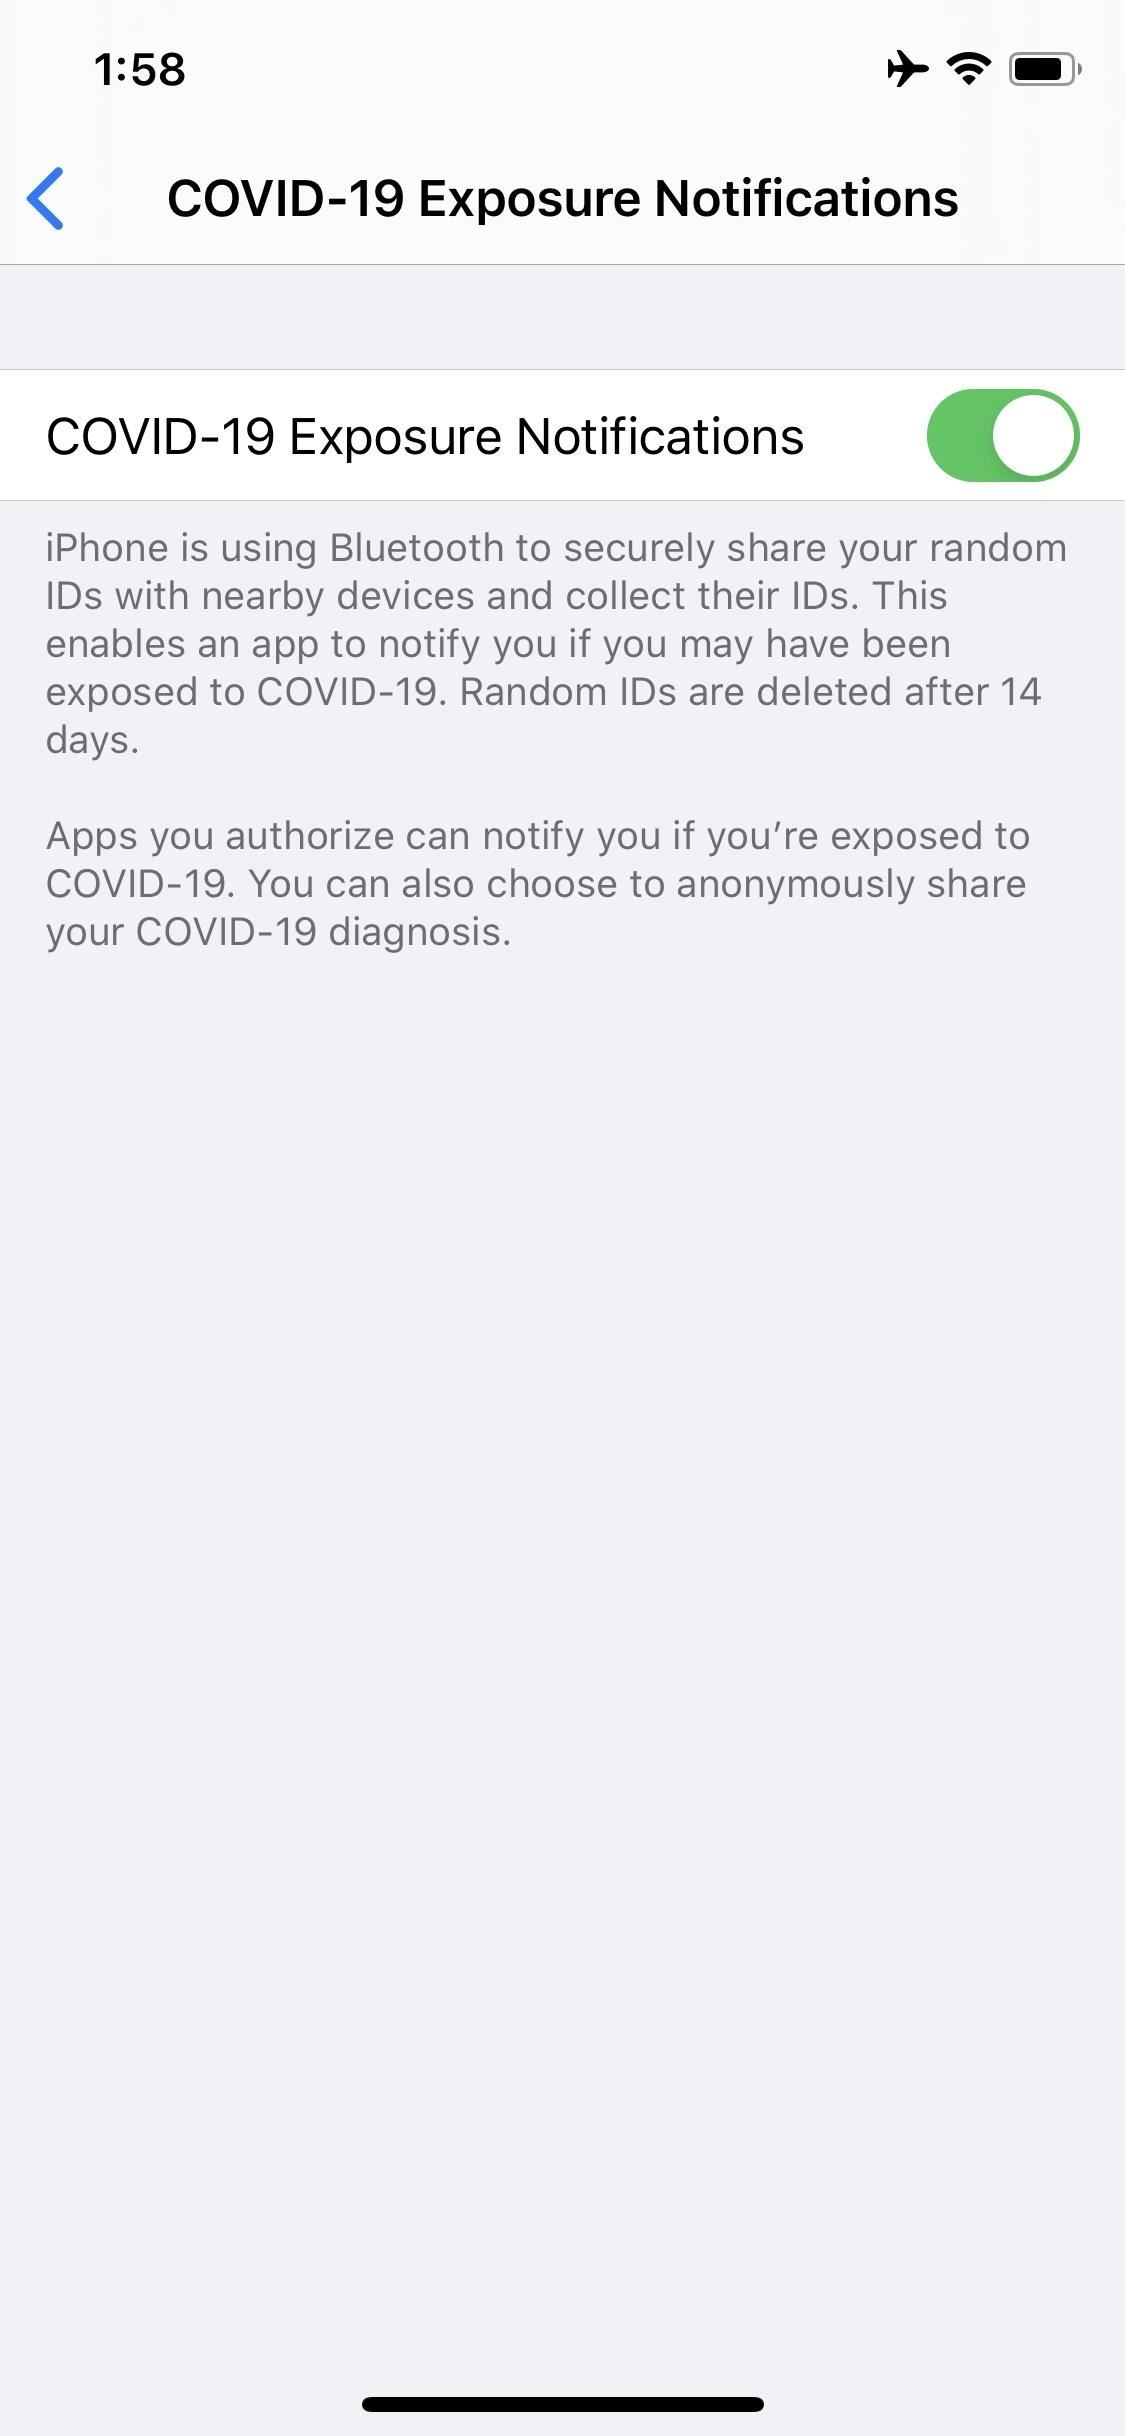 How to Disable COVID-19 Exposure Notifications in iOS 13.5